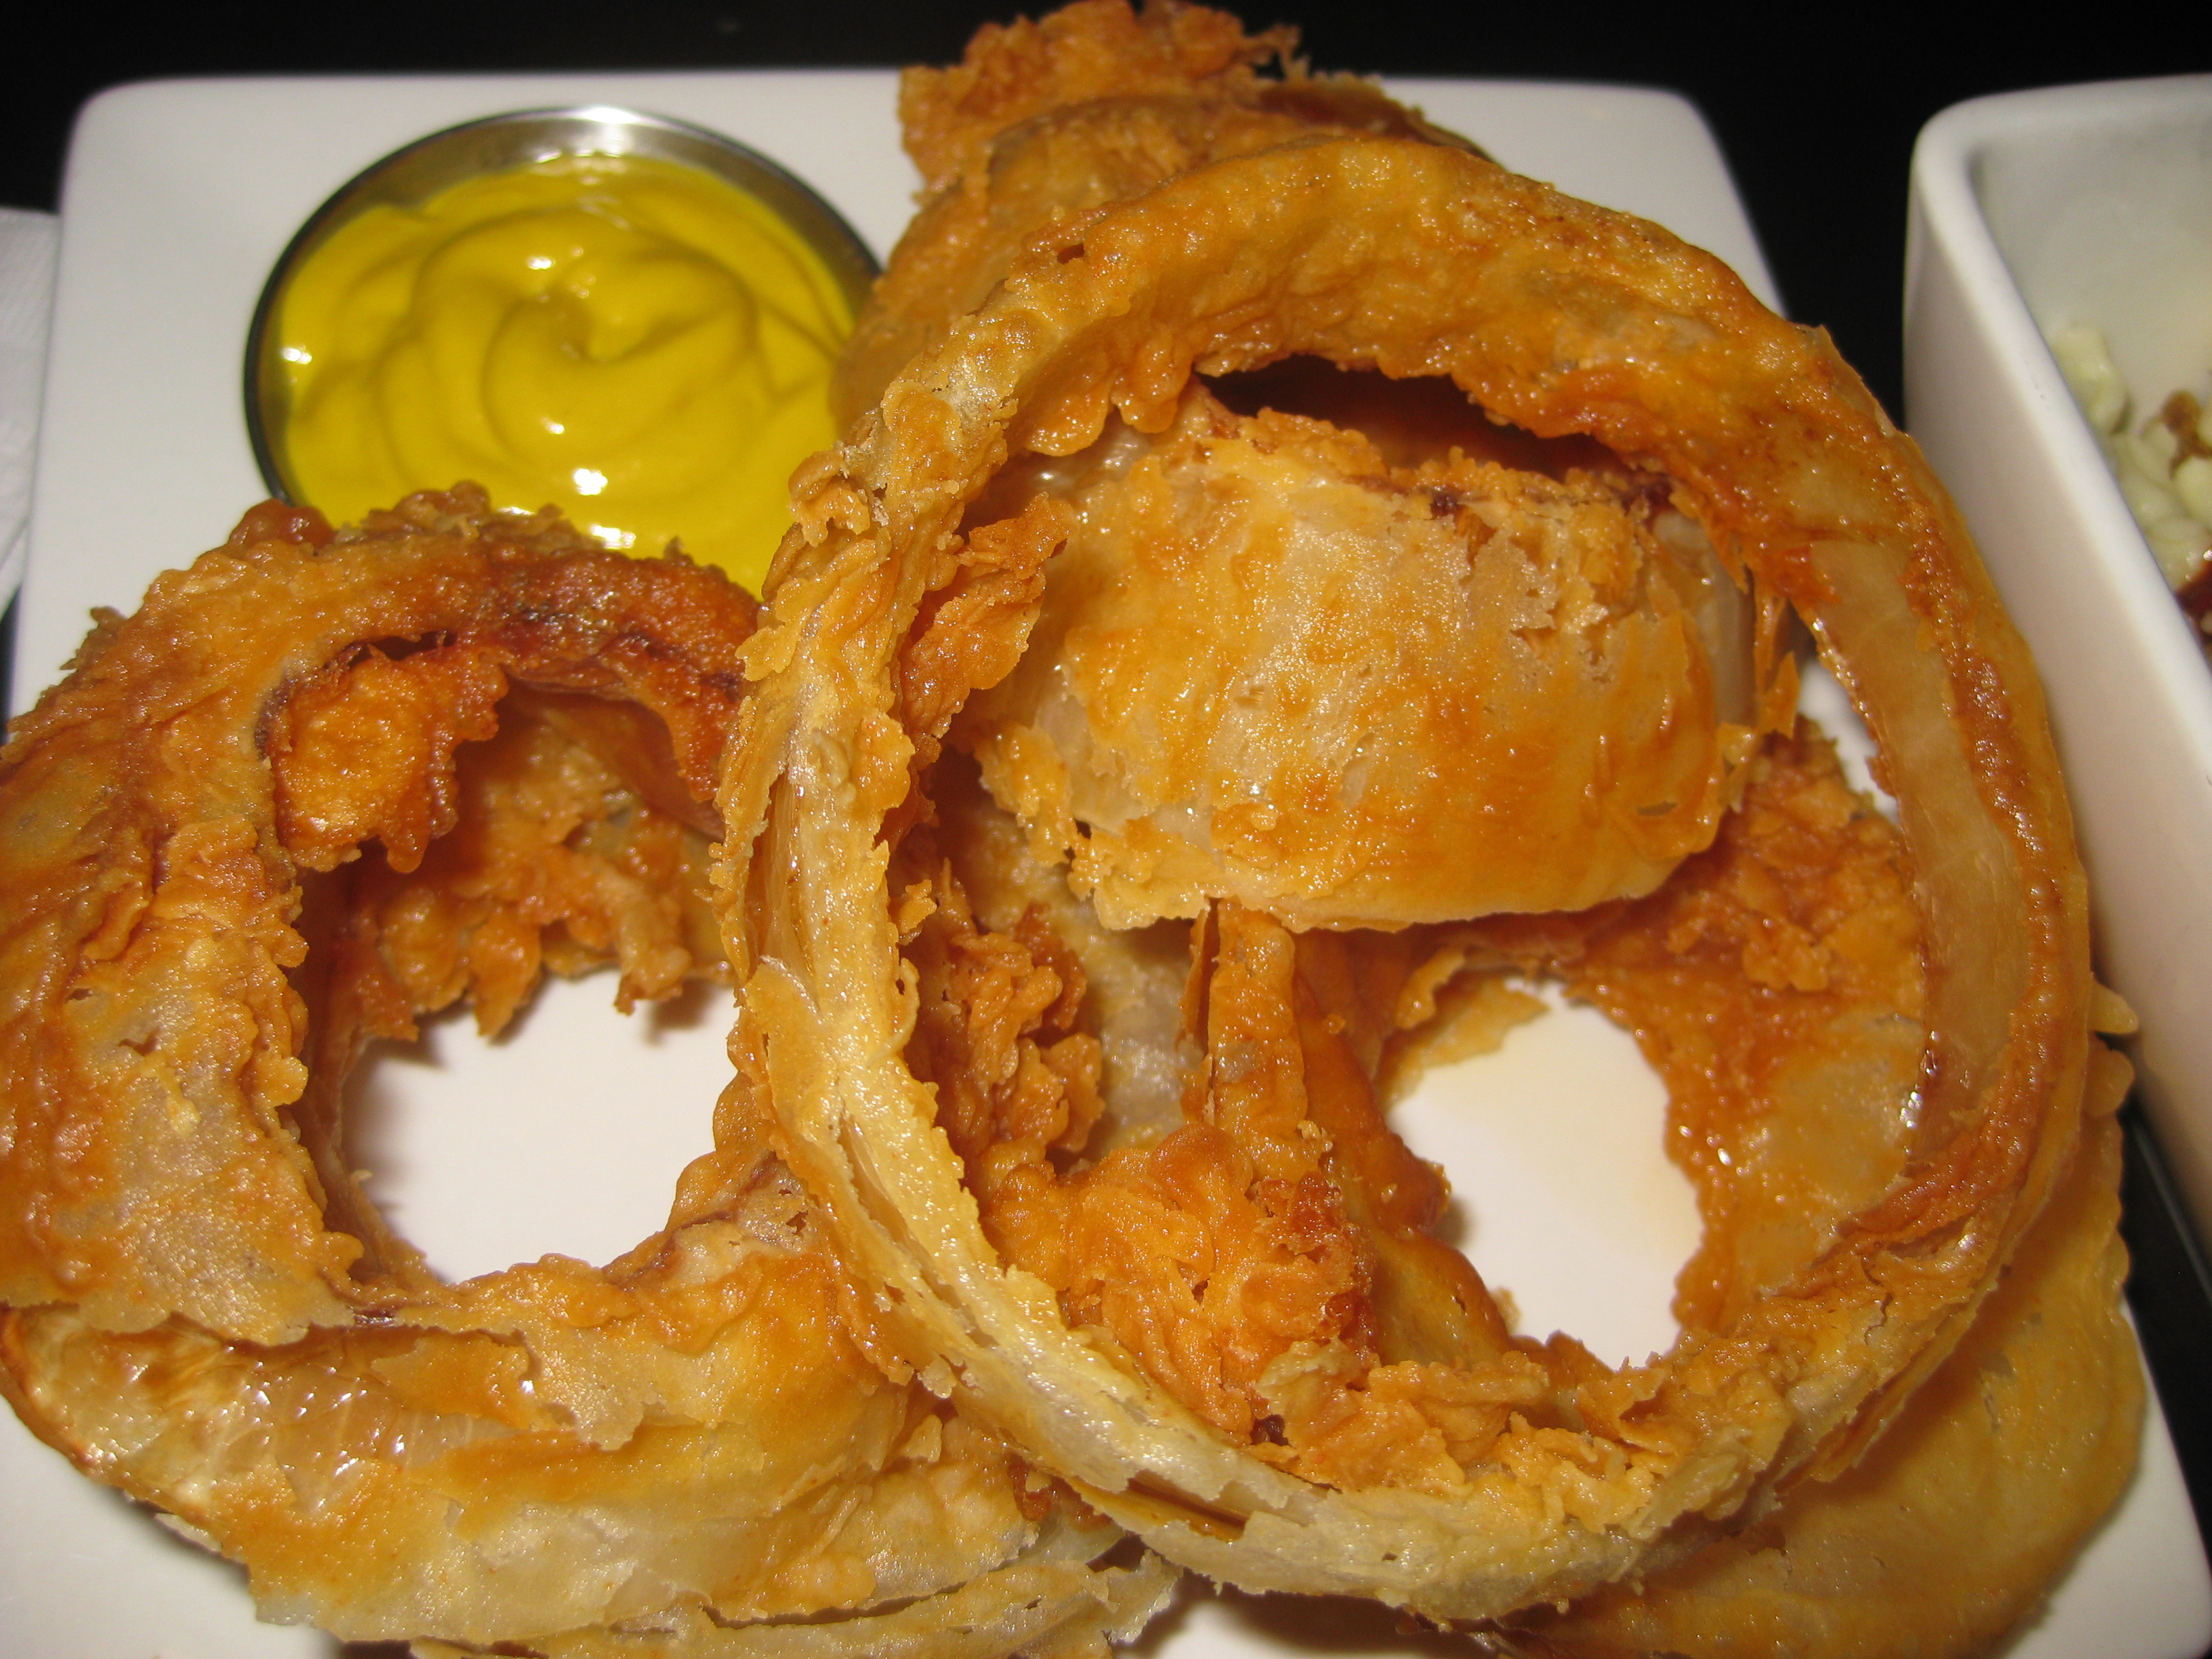 crunchy steve social onion rings perfect crispy s kitchen recipe and